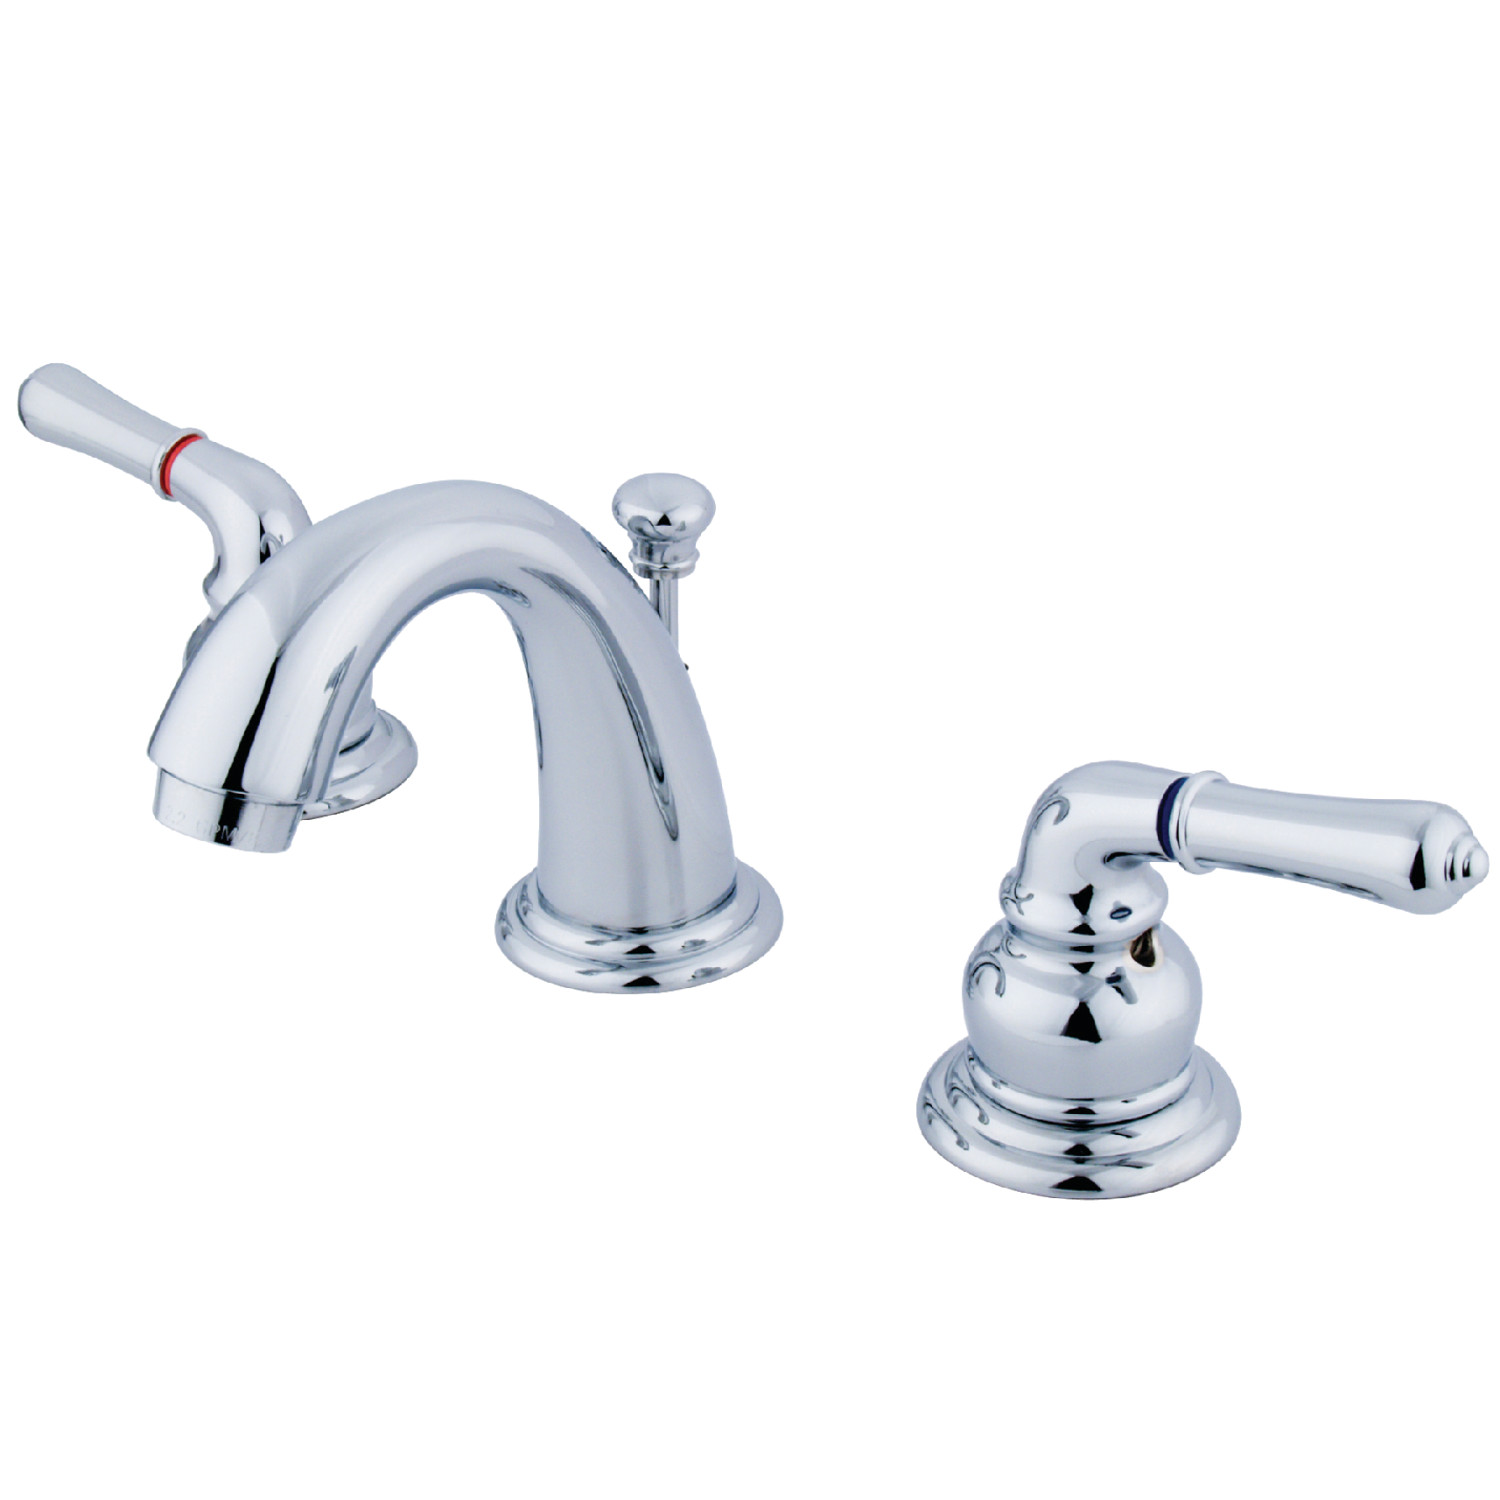 Traditional Two-Handle 3-Hole Deck Mounted Widespread Bathroom Faucet with Plastic Pop-Up in Polished Chrome with Four Finish Options